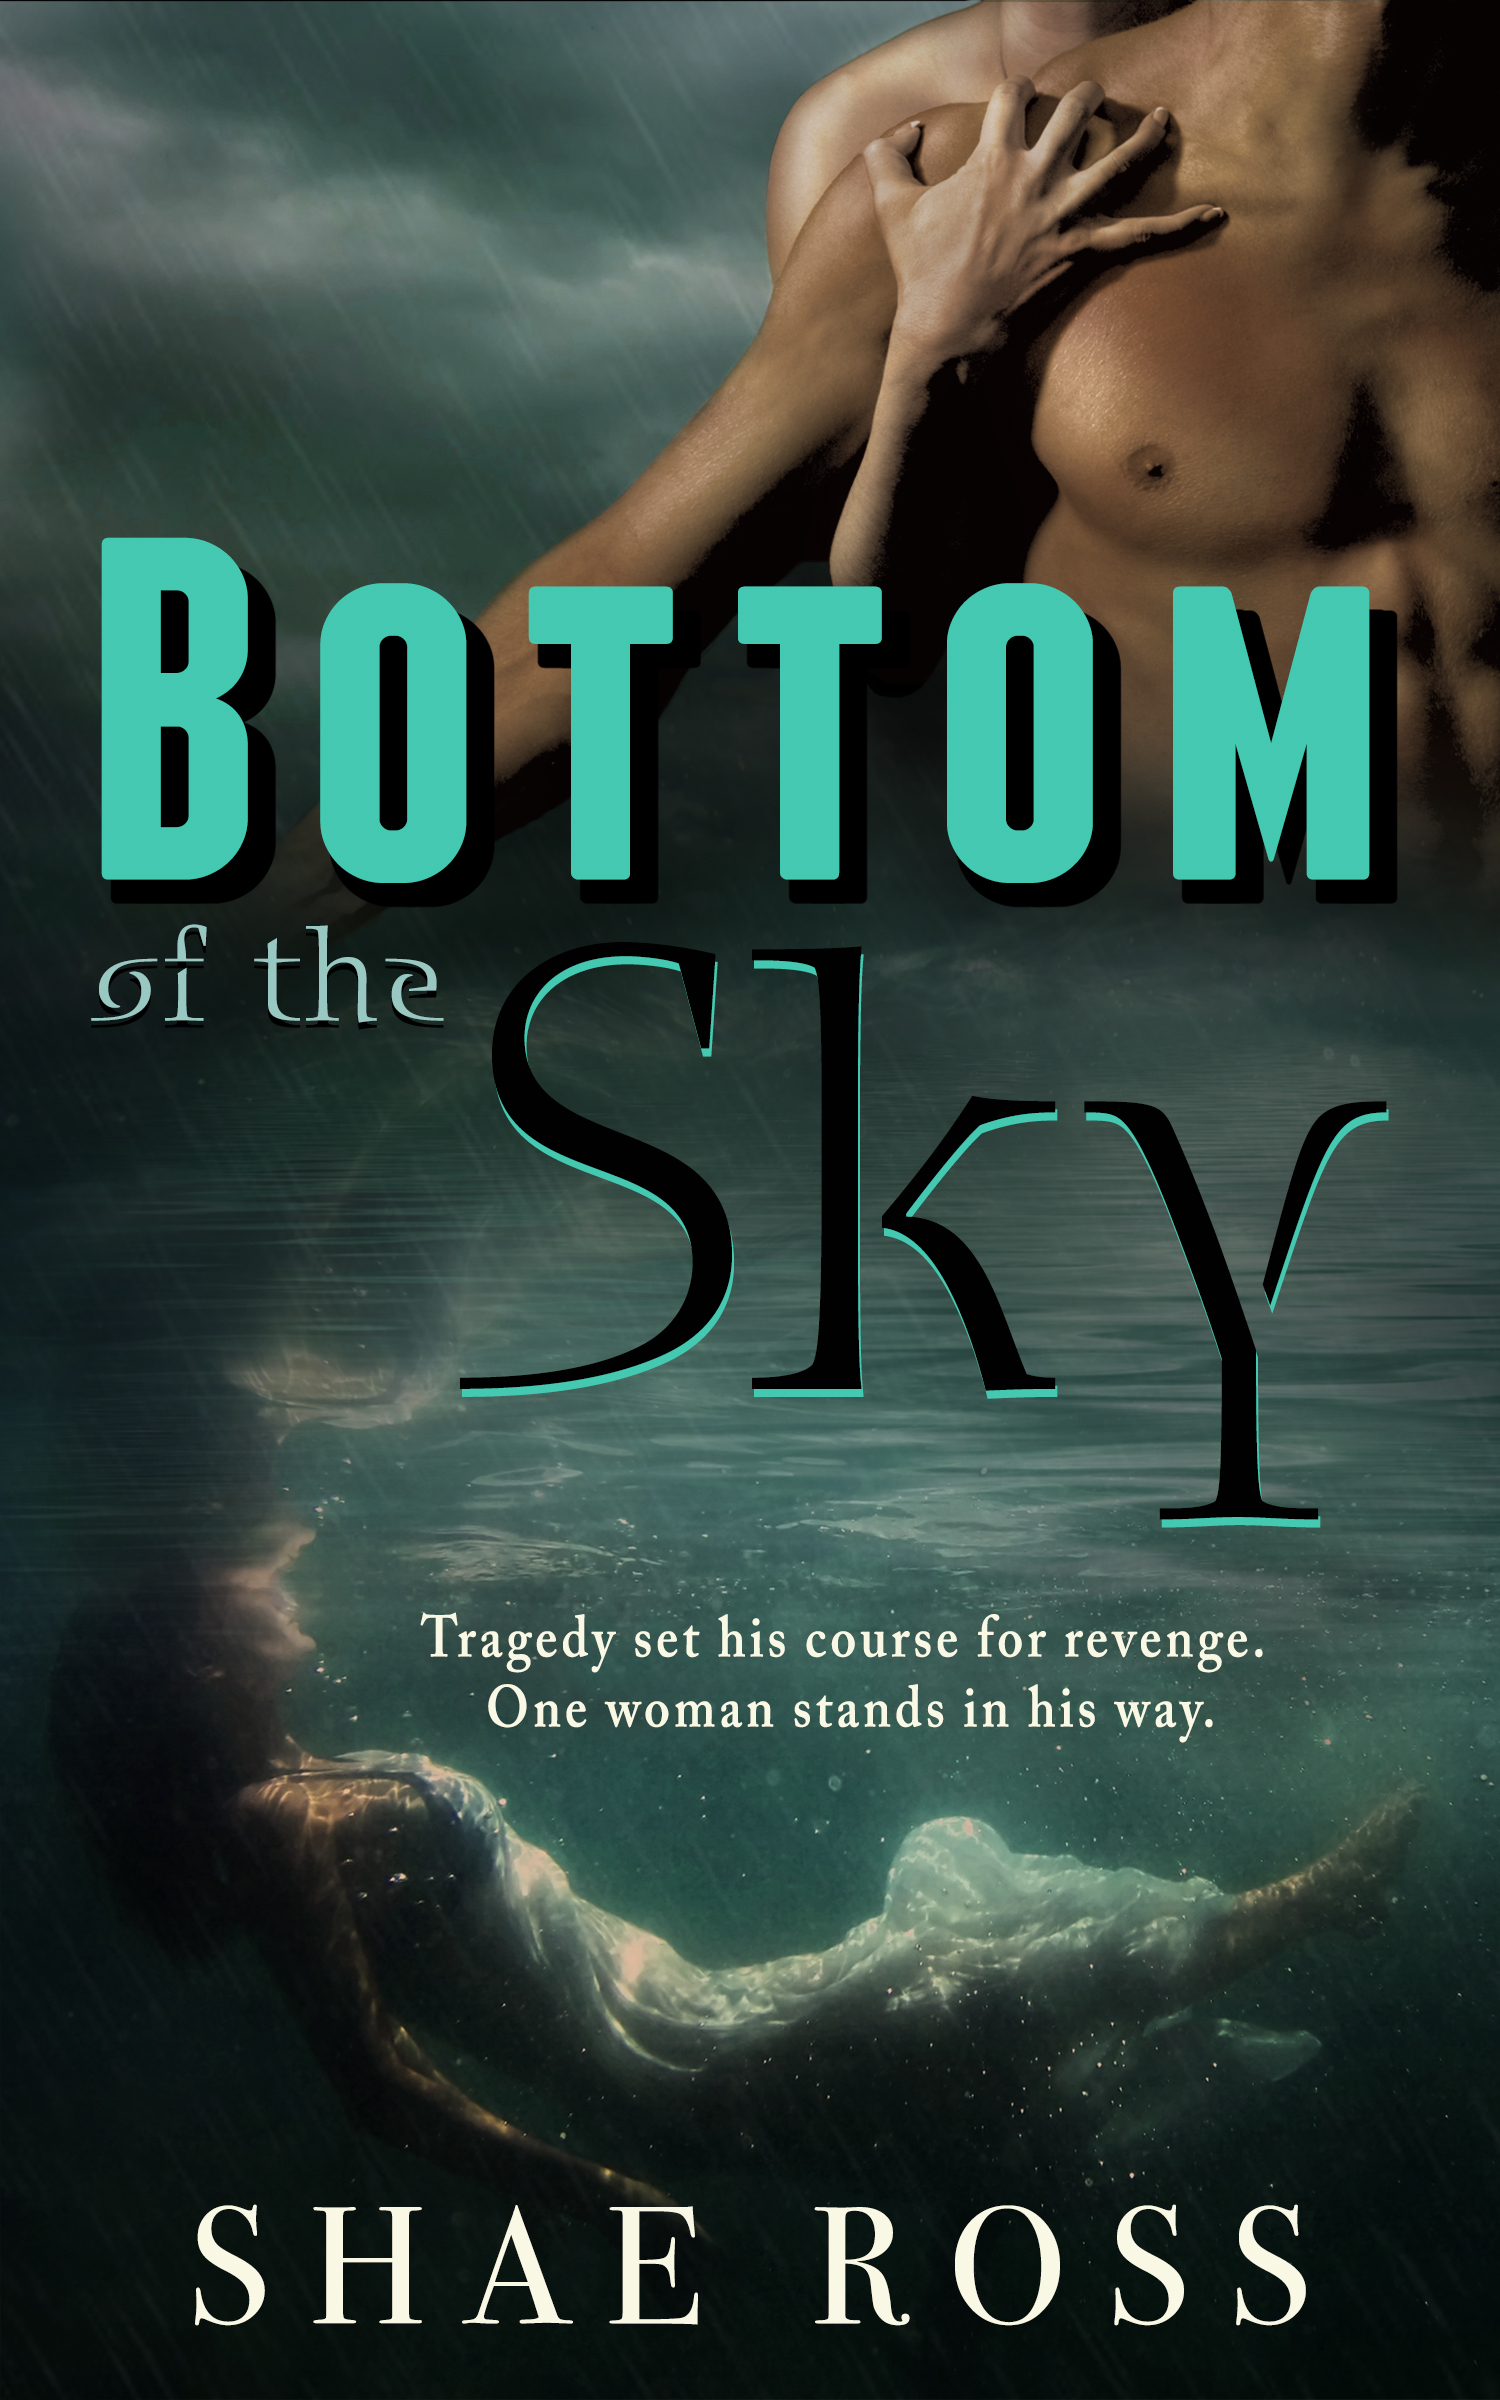 Bottom of the Sky by Shae Ross